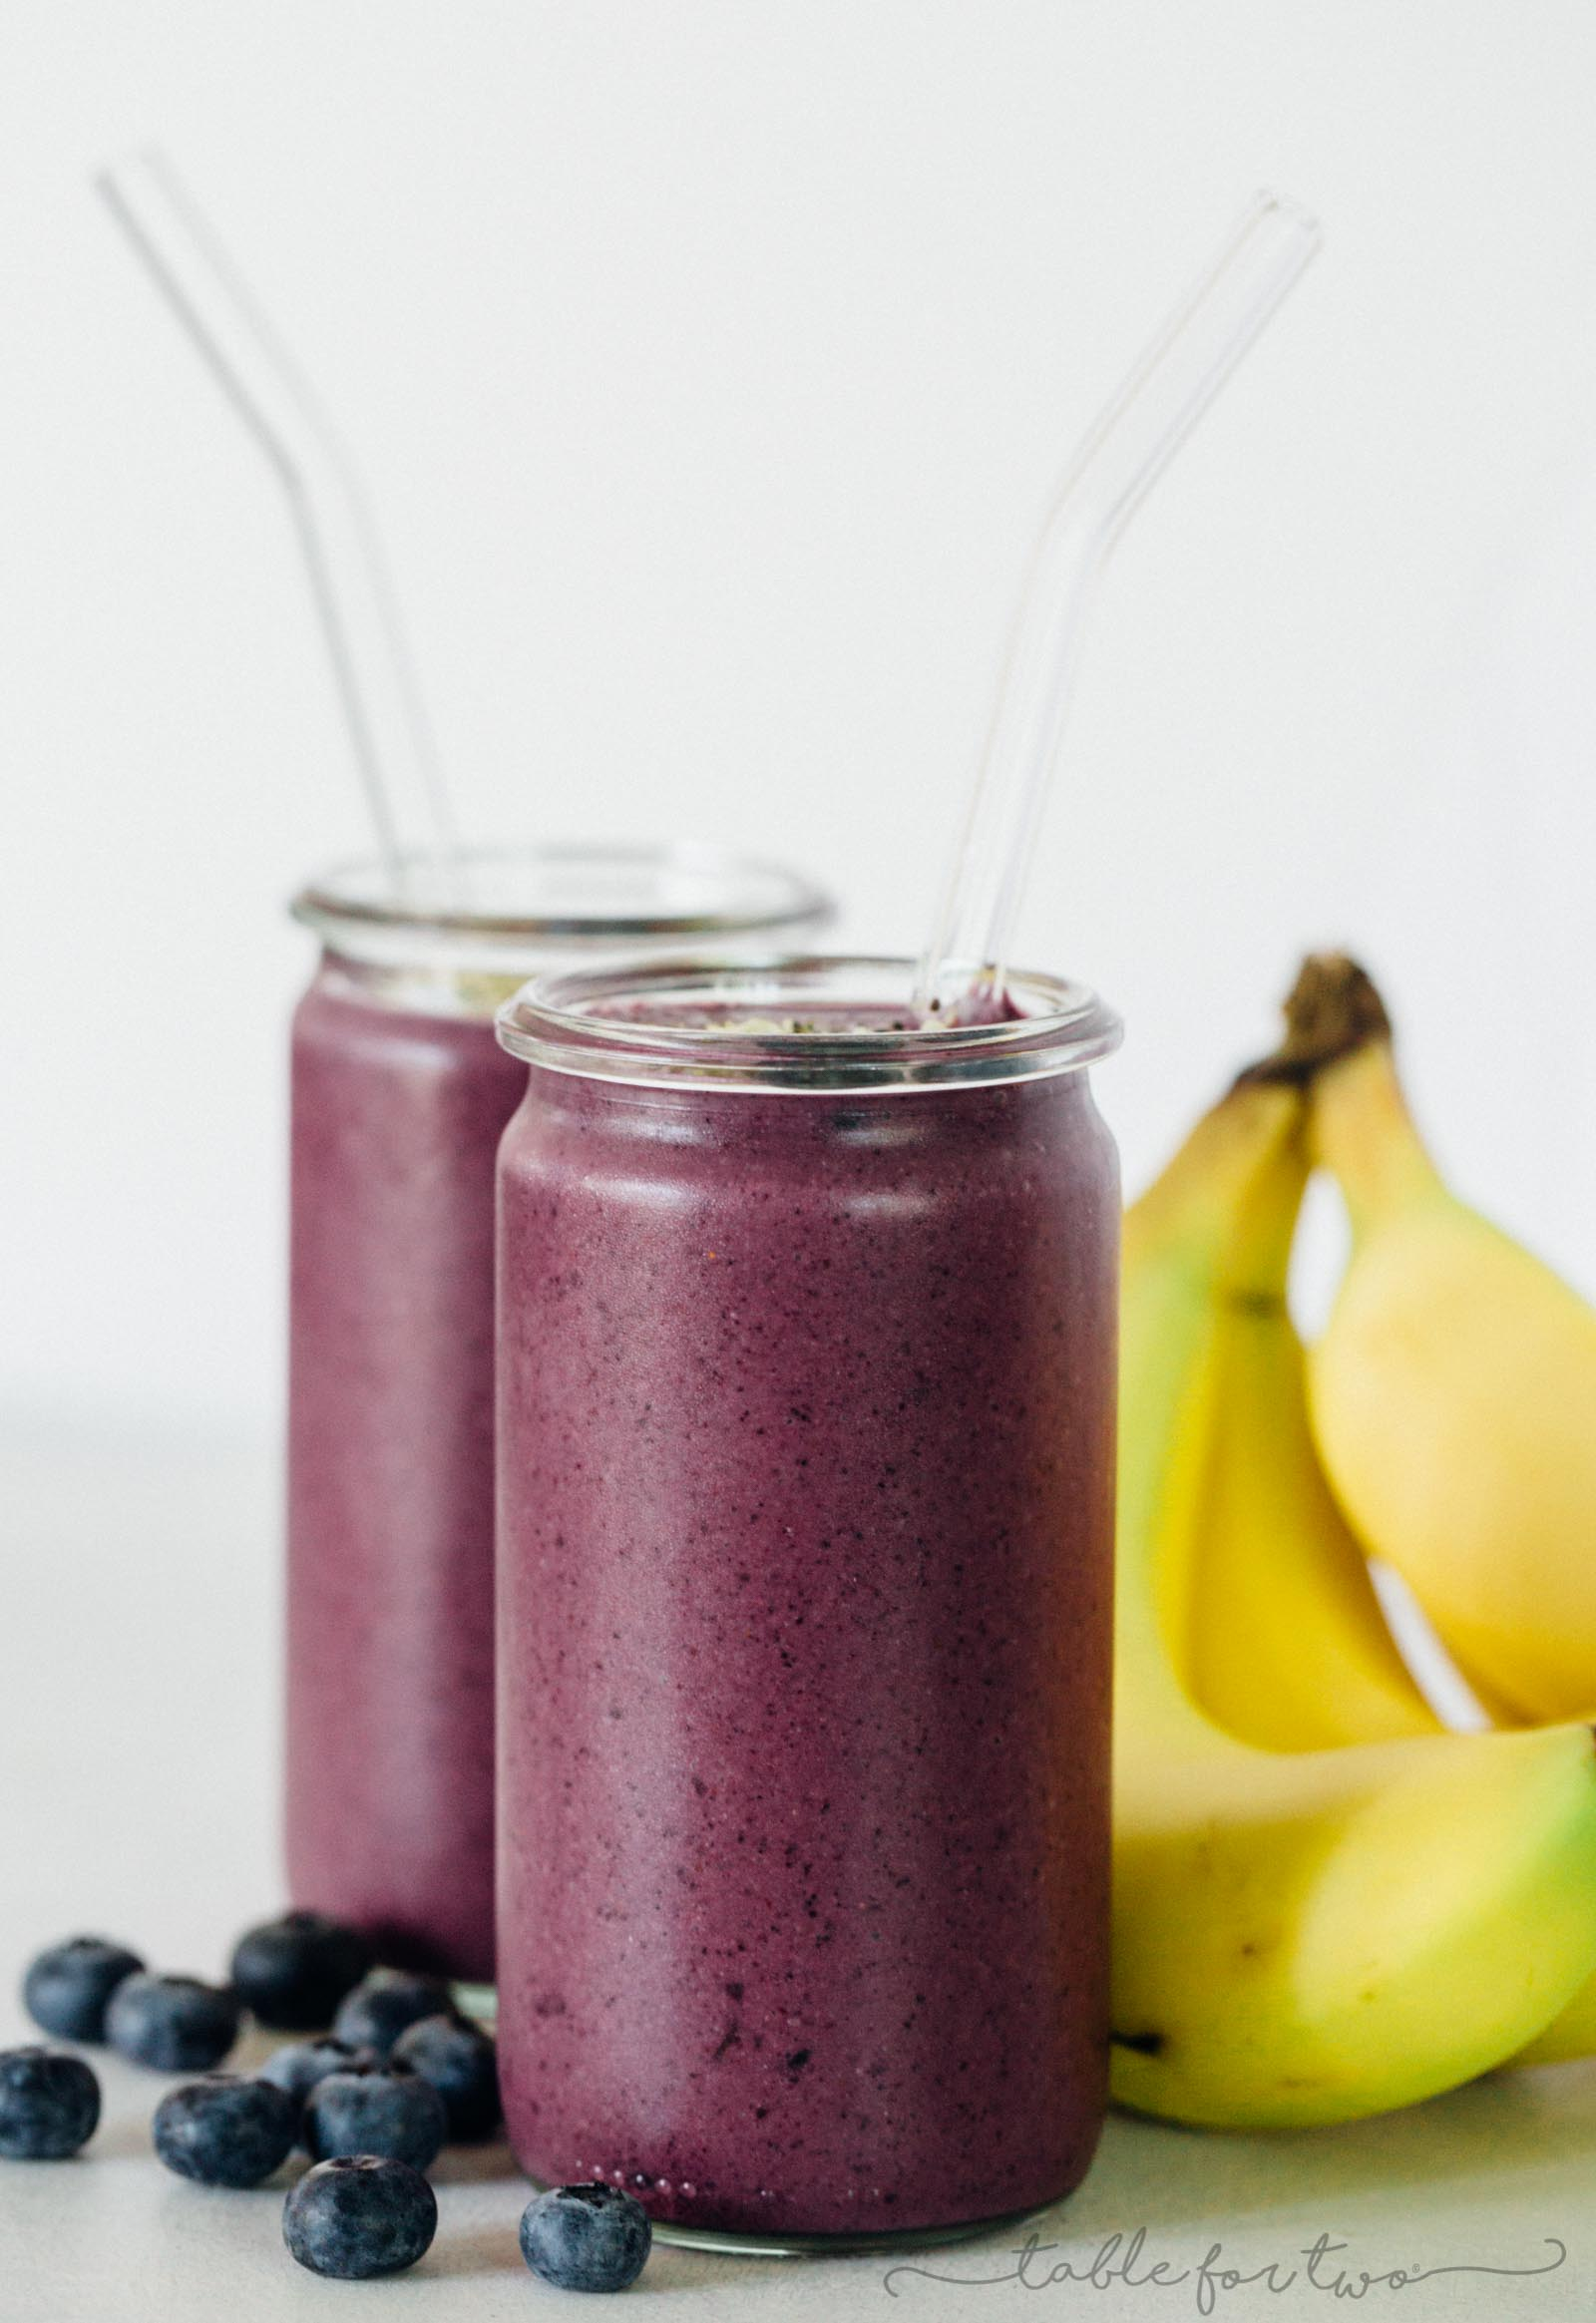 A deliciously decadent and refreshing blueberry banana smoothie to start your day or for a post-workout! This blueberry banana smoothie is packed with antioxidants and loads of healthy nutrients to get you through your day!